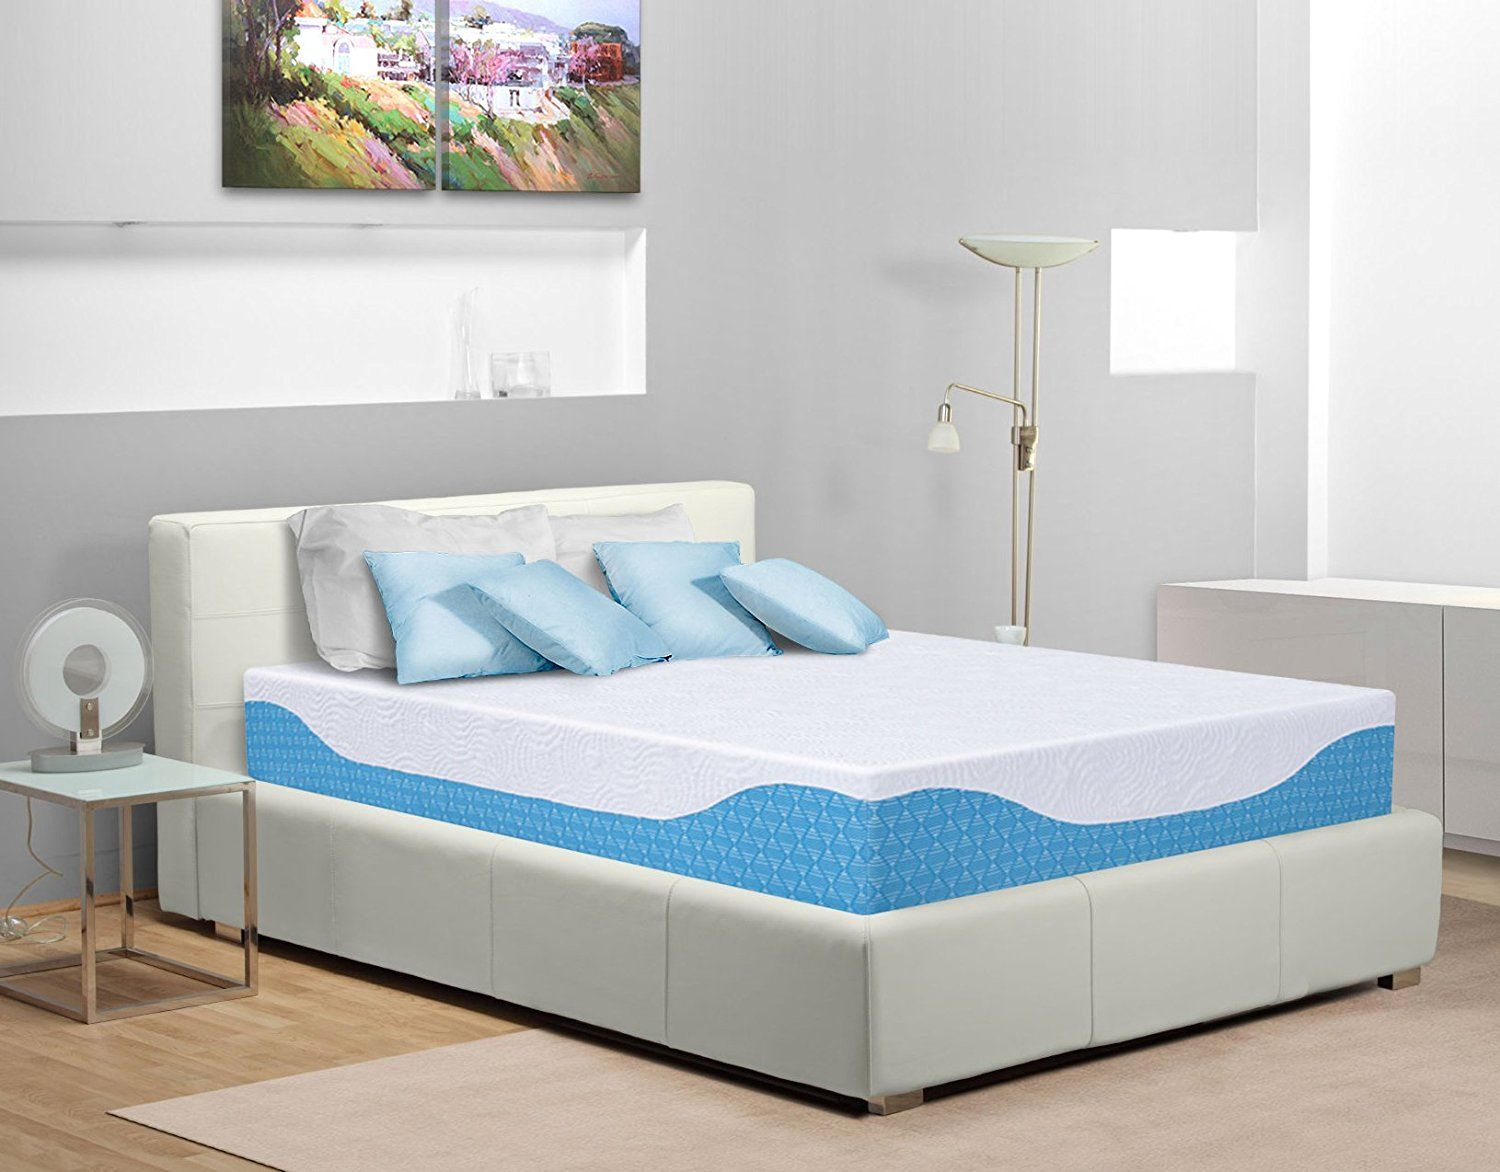 Image result for primasleep mattress